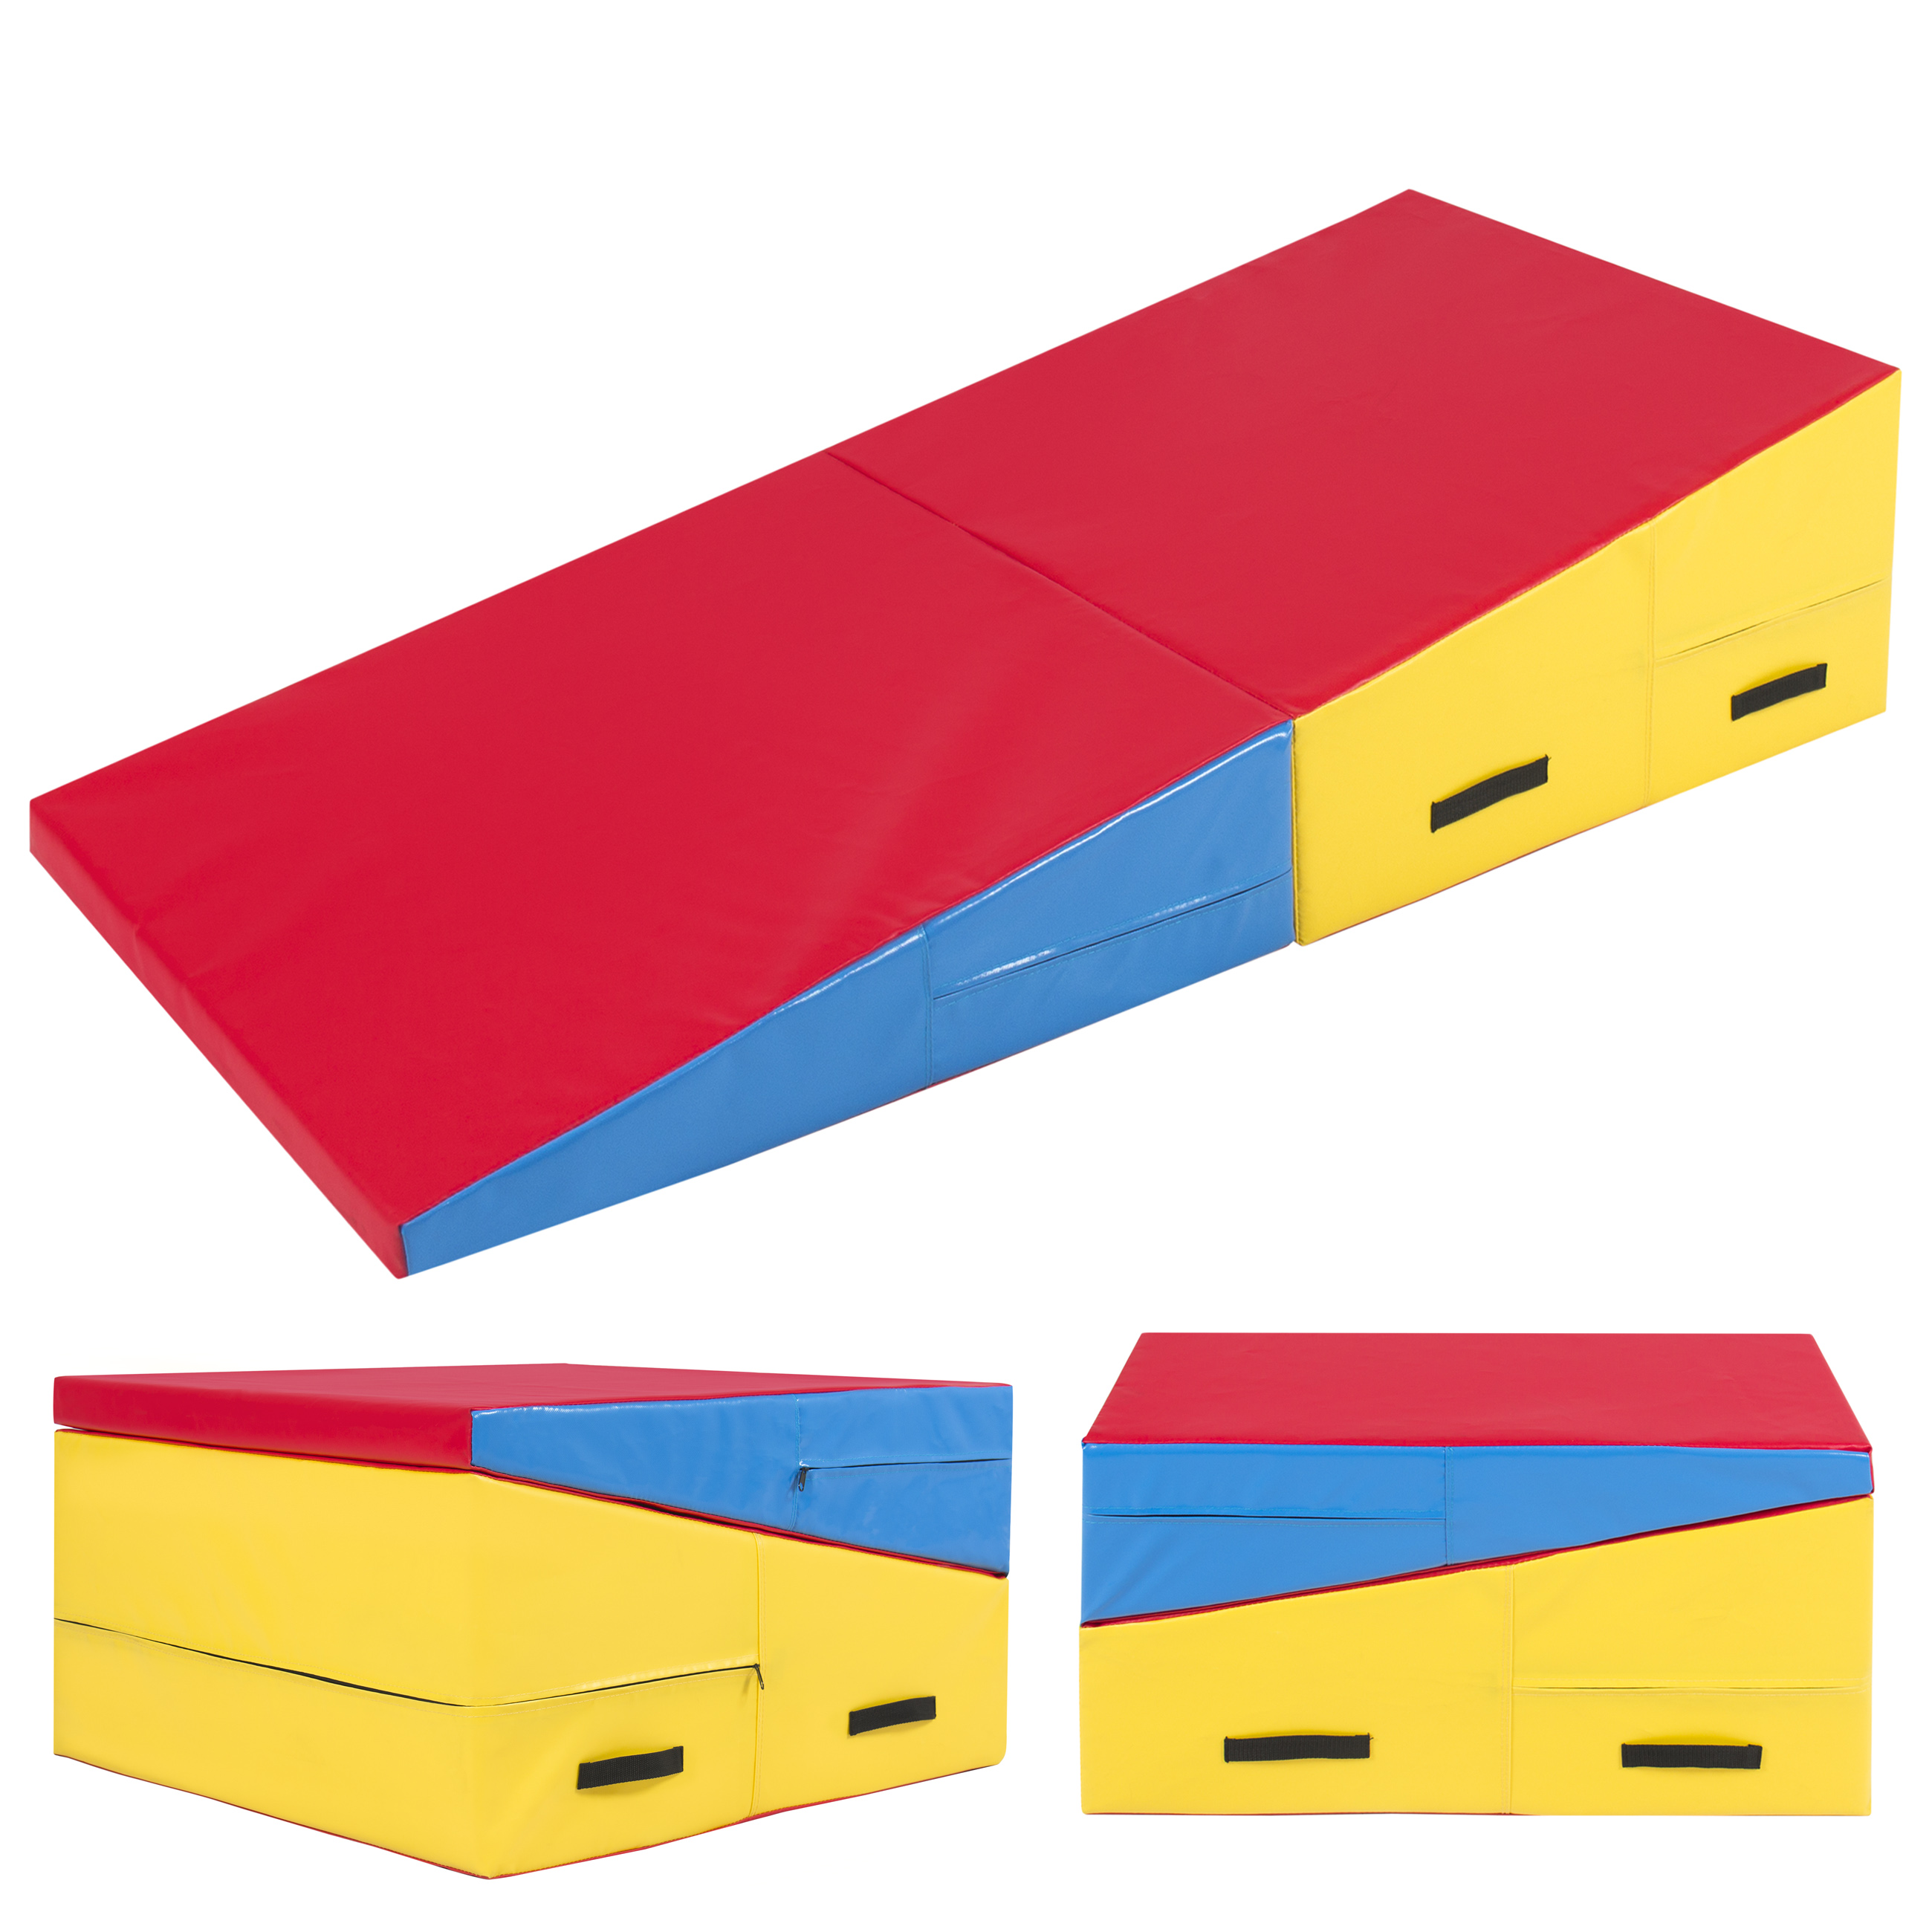 Best Choice Products 60 Quot X 30 Quot X 14 Quot Folding Gymnastics